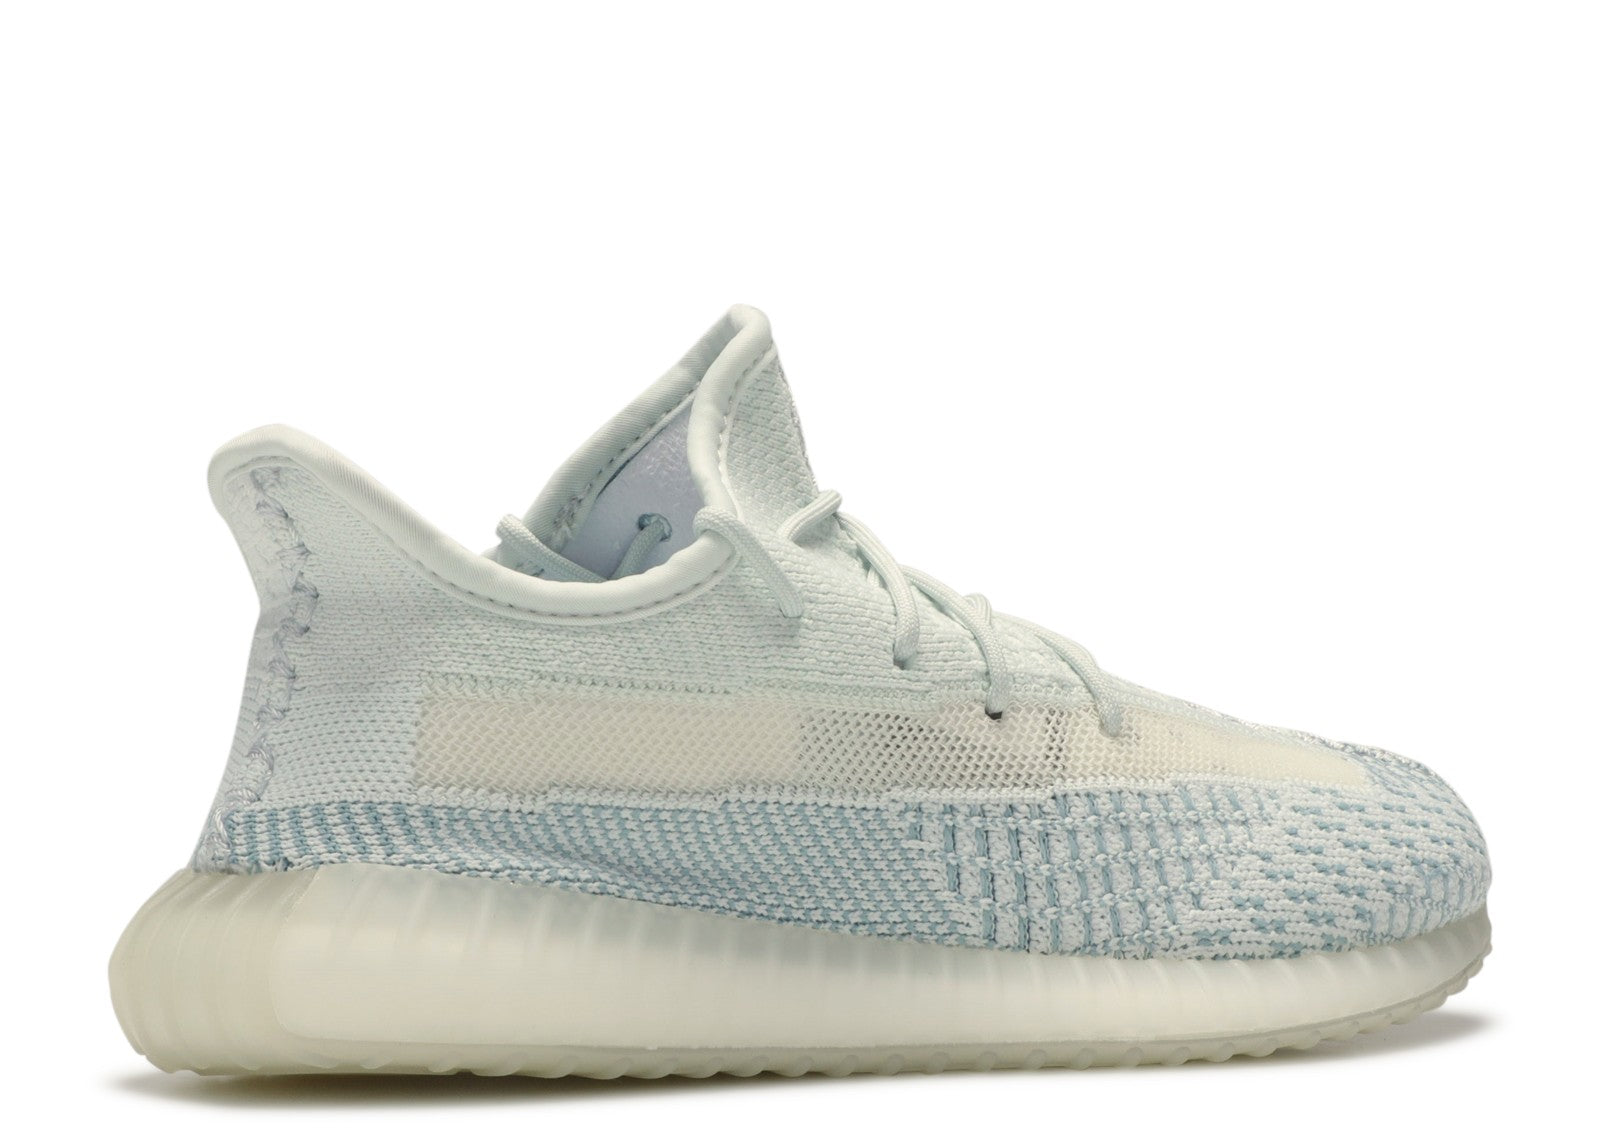 Adidas Yeezy Boost 350 V2 Kids 'Cloud White'